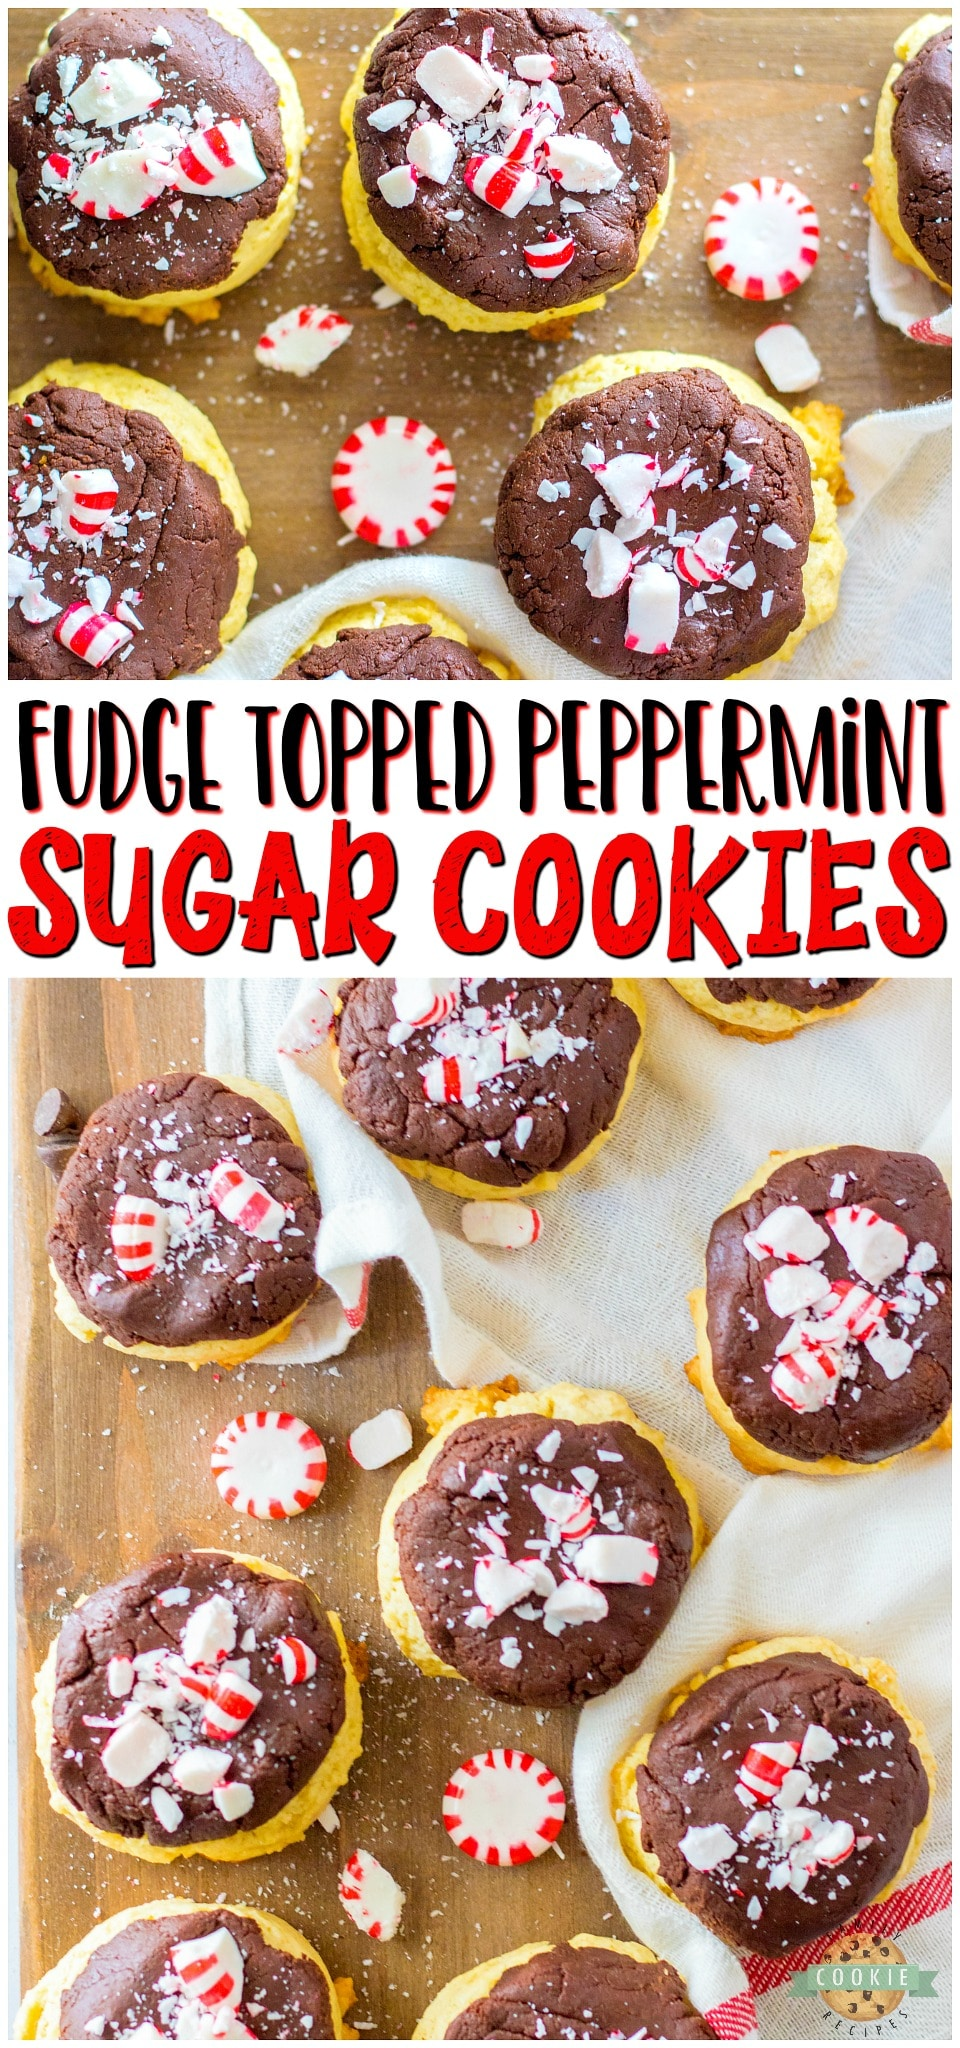 Peppermint Fudge Sugar Cookies are two favorites in one! Soft sugar cookies topped with a chocolate peppermint fudge & crushed candy canes for an over-the-top Christmas treat! #cookies #fudge #peppermint #baking #christmas #easyrecipe from BUTTER WITH A SIDE OF BREAD via @buttergirls